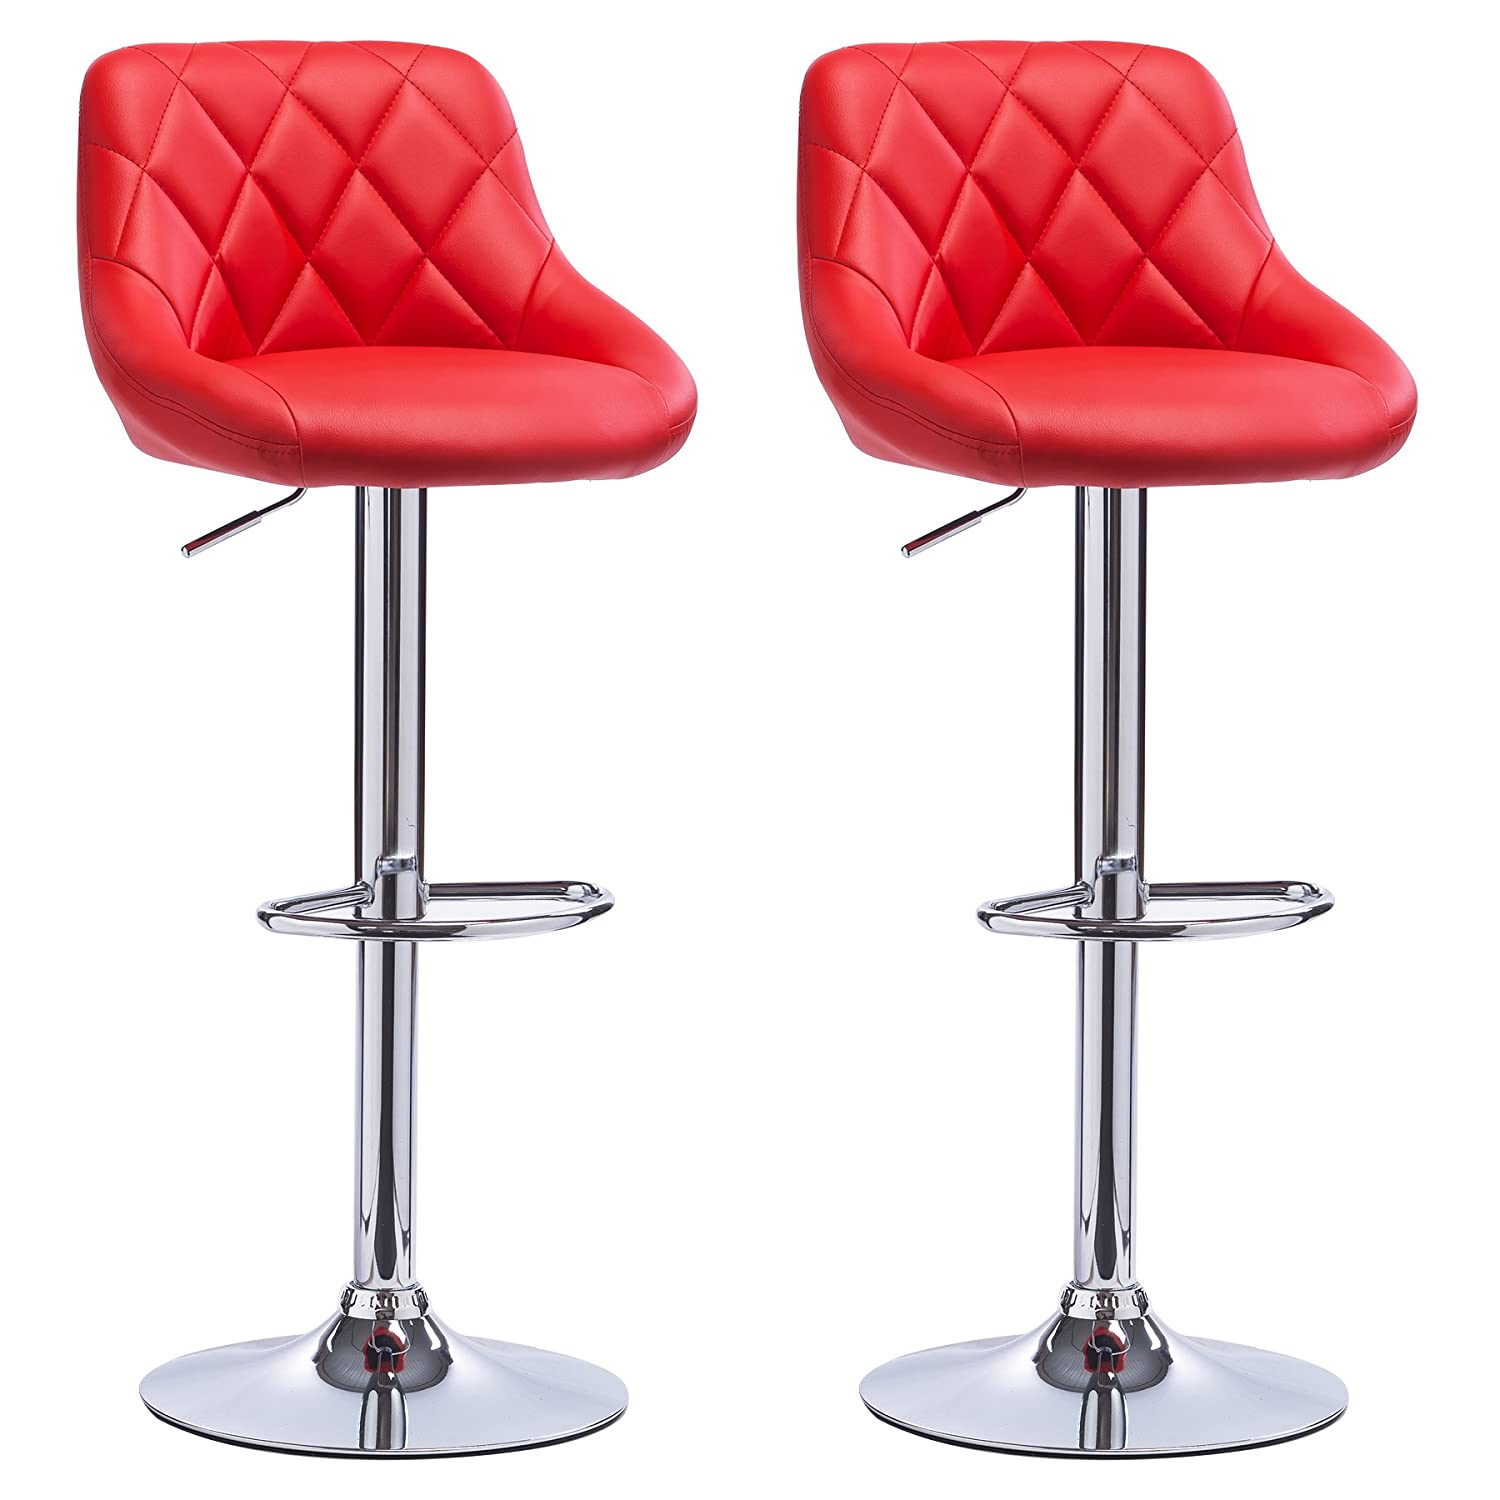 Woltu Bar Stools Red Bar Chairs Breakfast Dining Stools For Kitchen